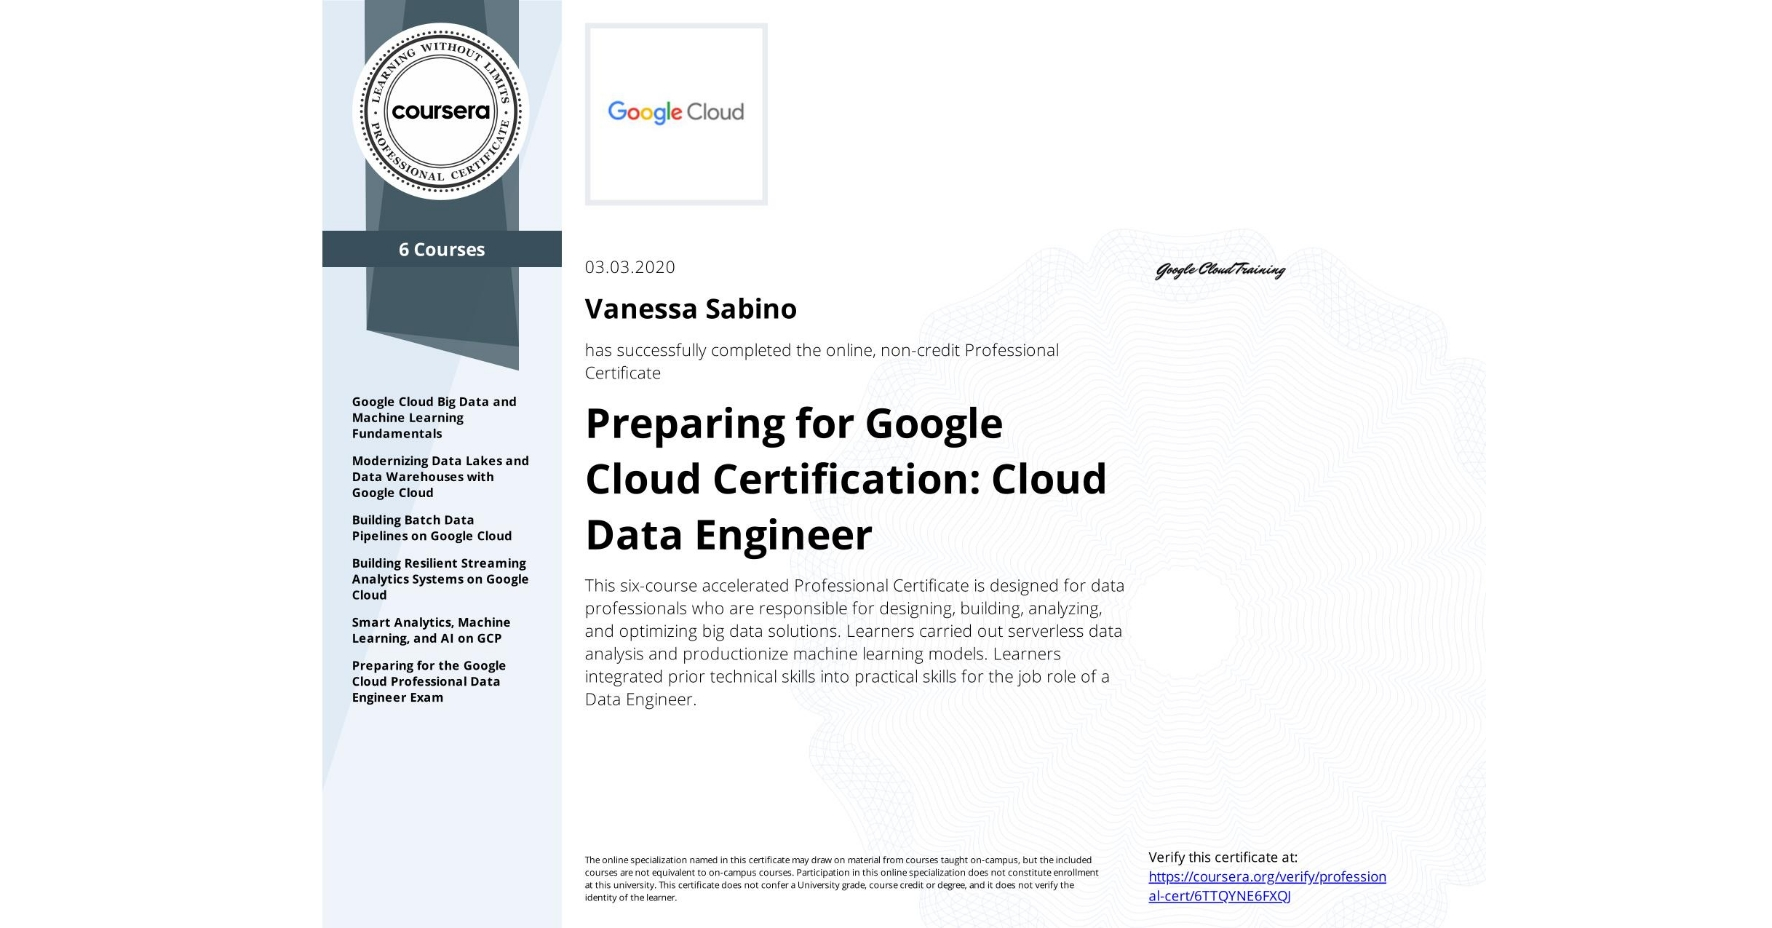 View certificate for Vanessa Sabino, Data Engineering with Google Cloud, offered through Coursera. This six-course accelerated Professional Certificate is designed for data professionals who are responsible for designing, building, analyzing, and optimizing big data solutions. Learners carried out serverless data analysis and productionize machine learning models.  Learners integrated prior technical skills into practical skills for the job role of a Data Engineer.